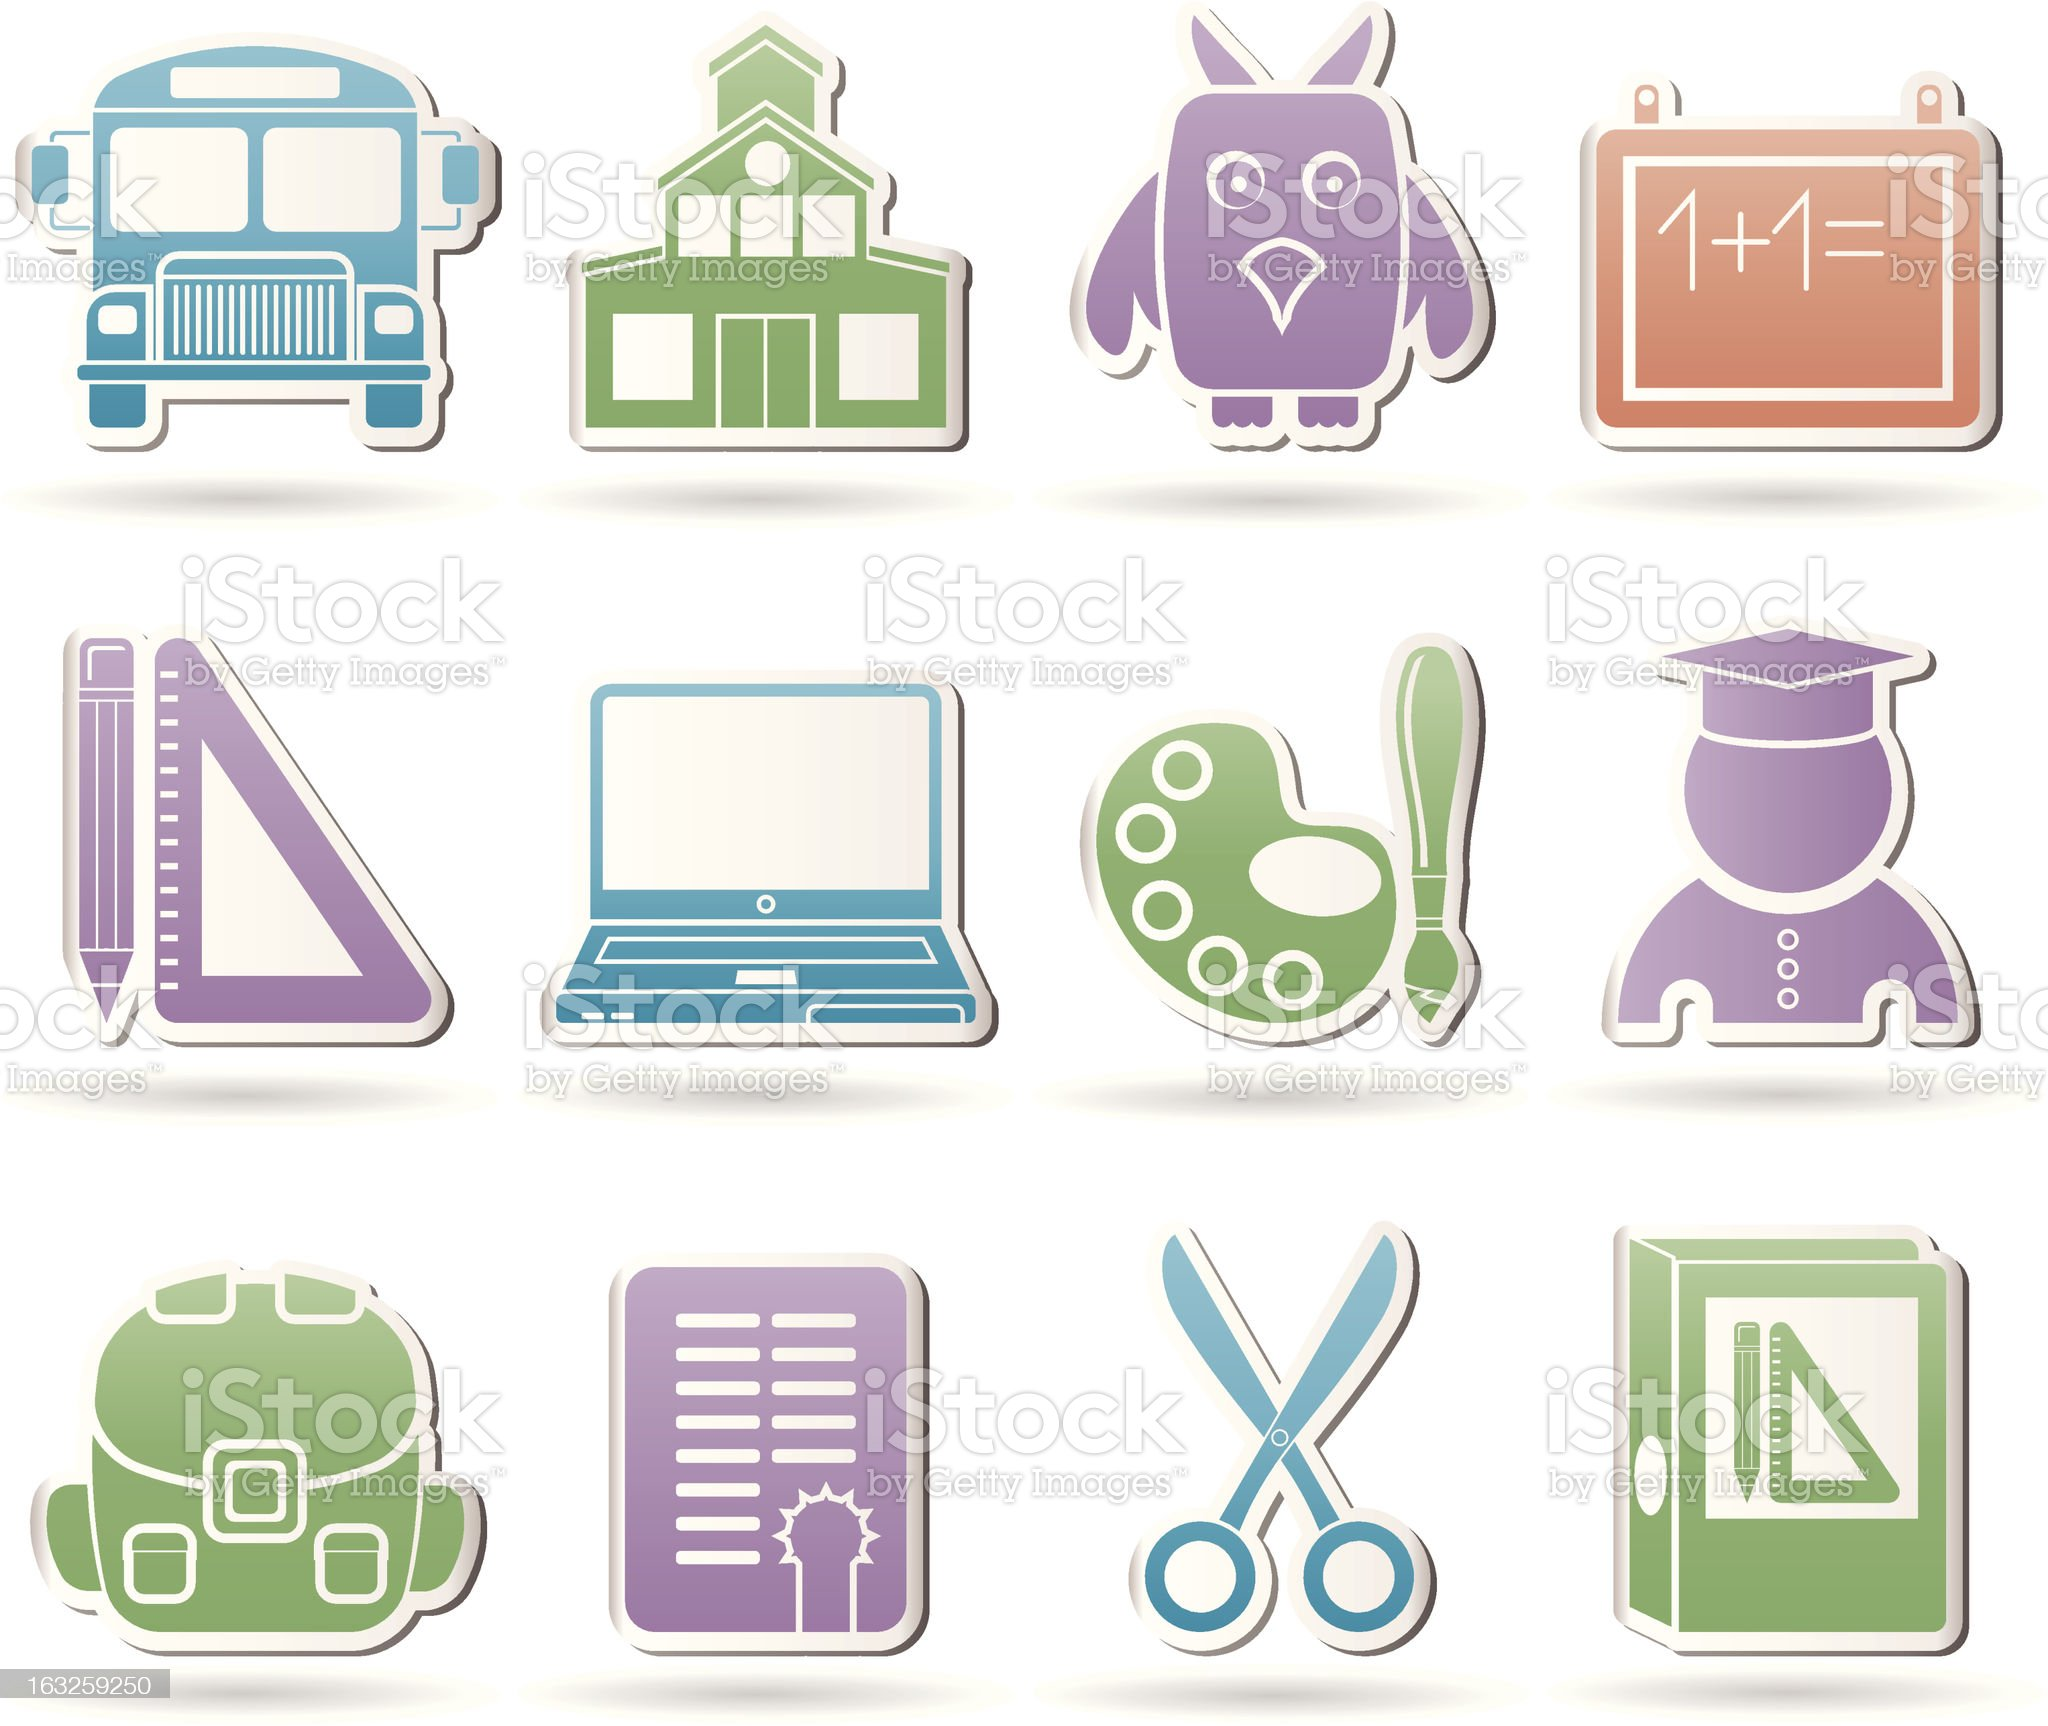 School and education objects royalty-free stock vector art